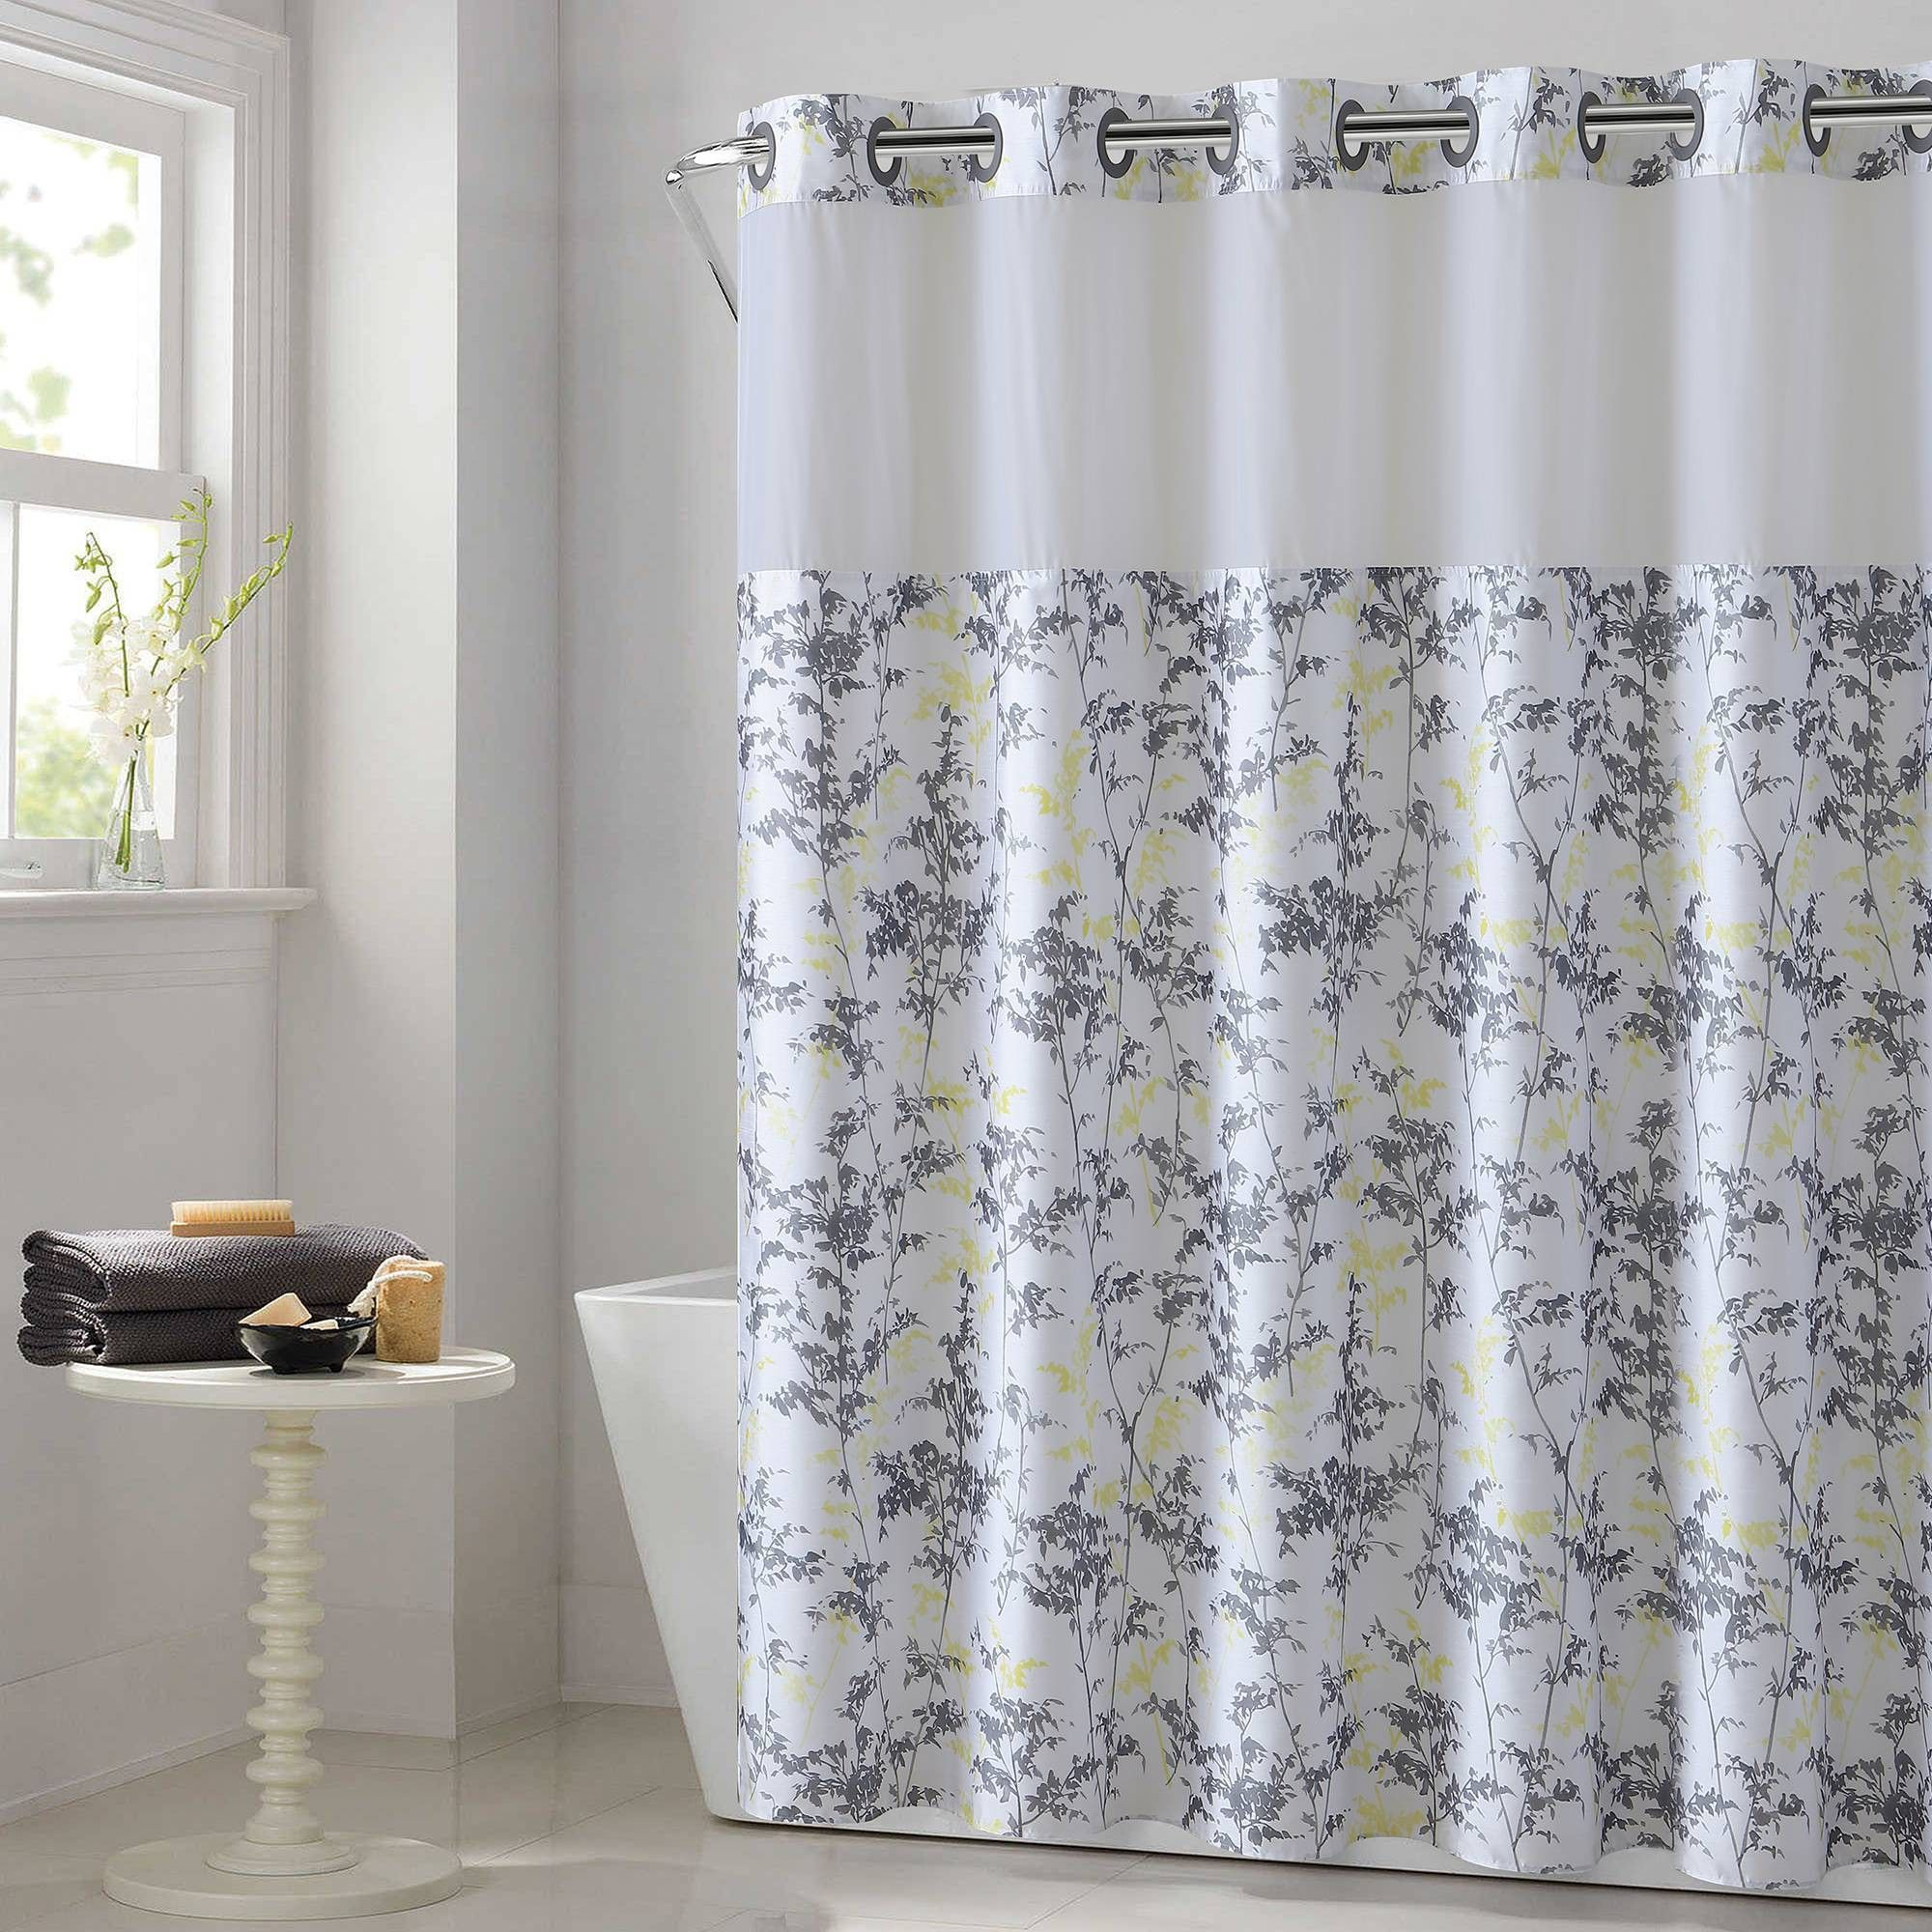 Field Leaves Shower Curtain With Fabric Liner Hookless